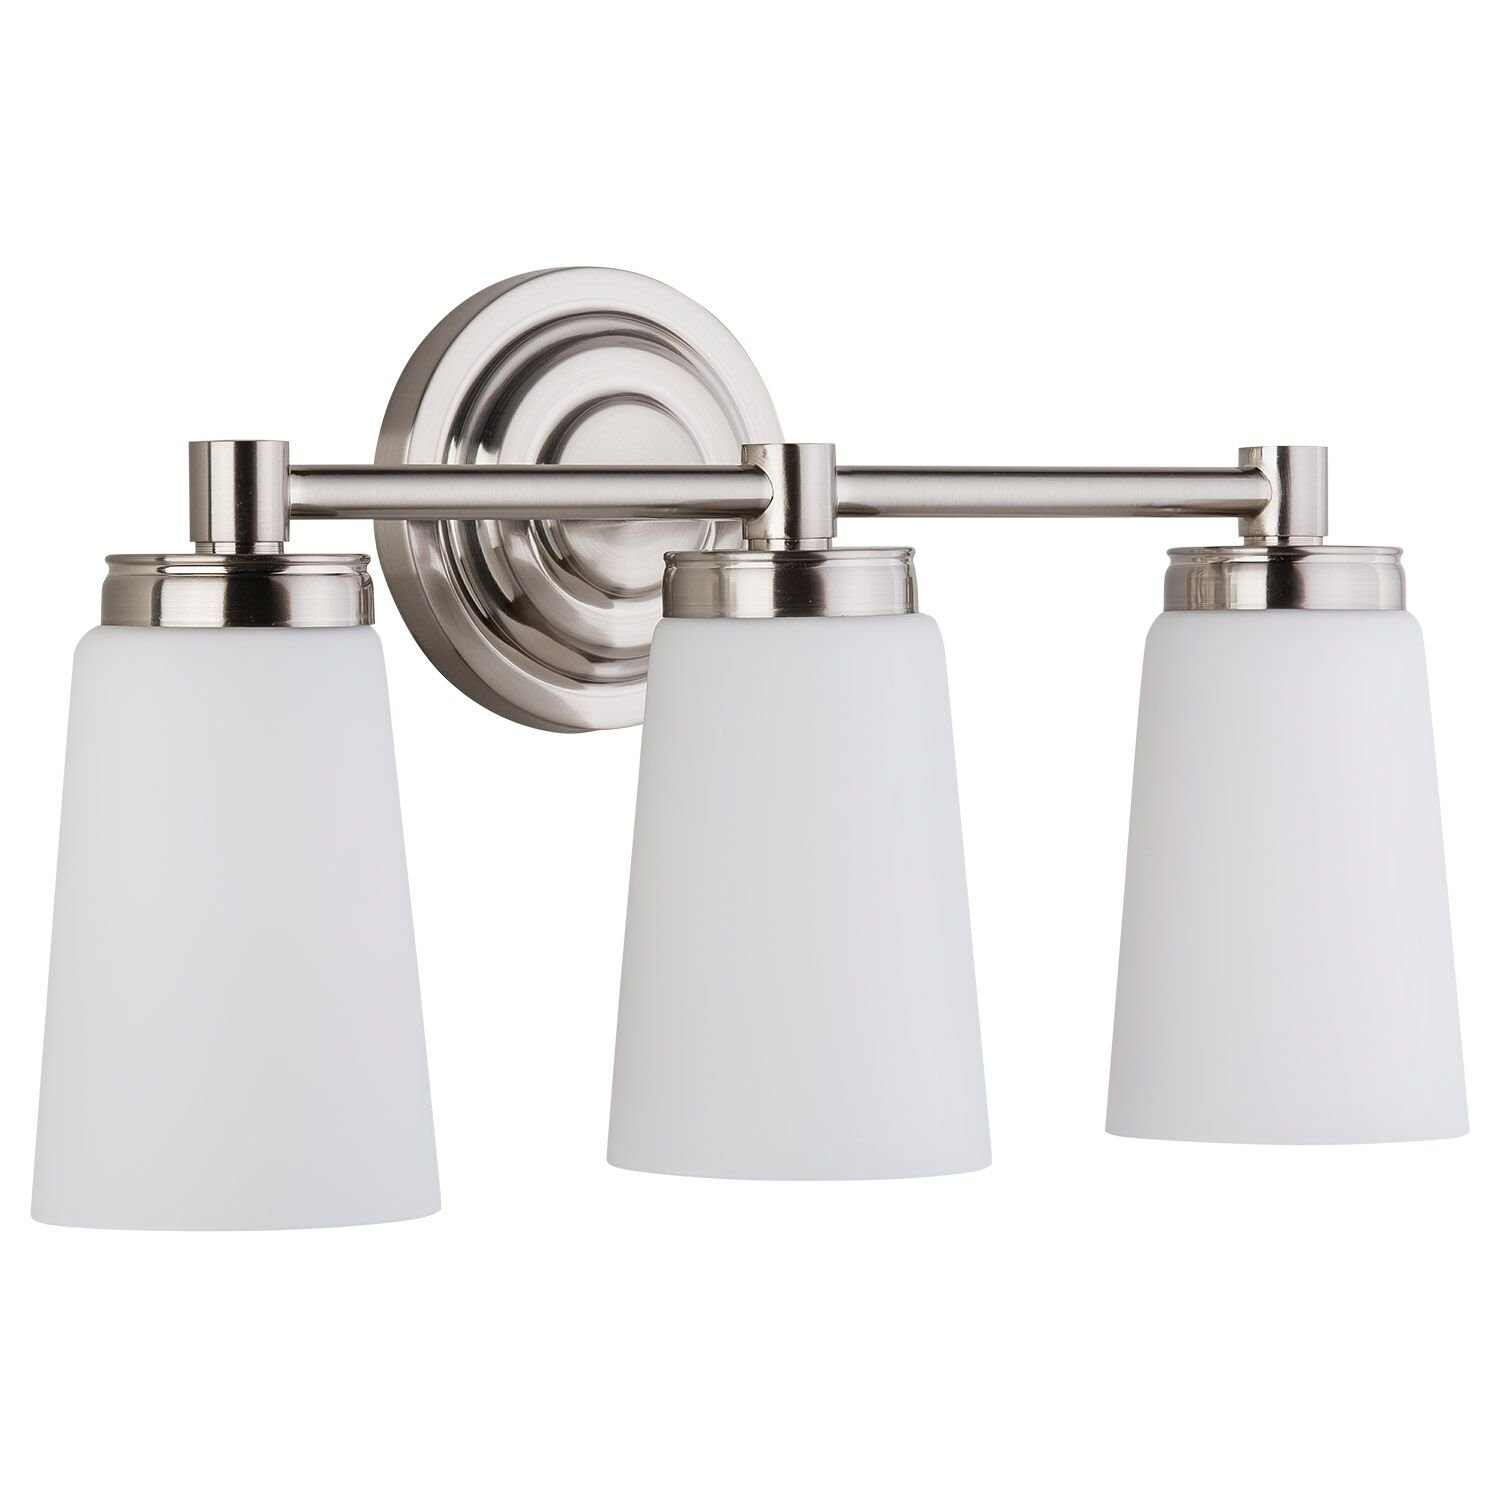 Sheffield 3 Light Bathroom Vanity Brushed Nickel w Frosted Glass Linea di Liara LL-WL260-3-BN